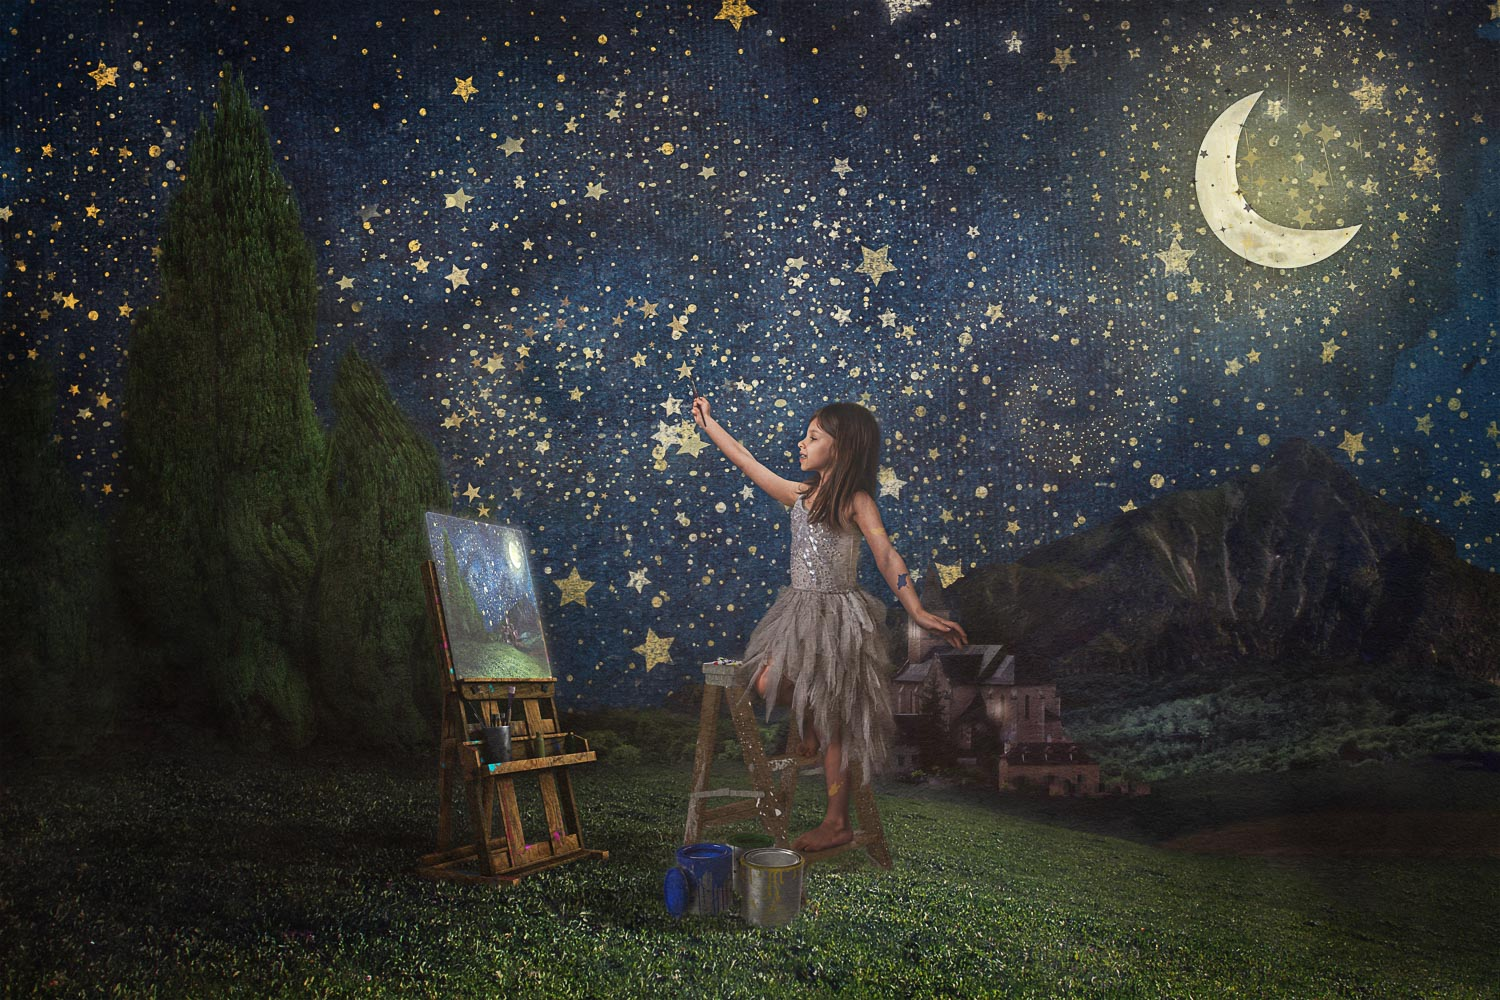 little girl paining her own version of starry night by van gogh storybook composite